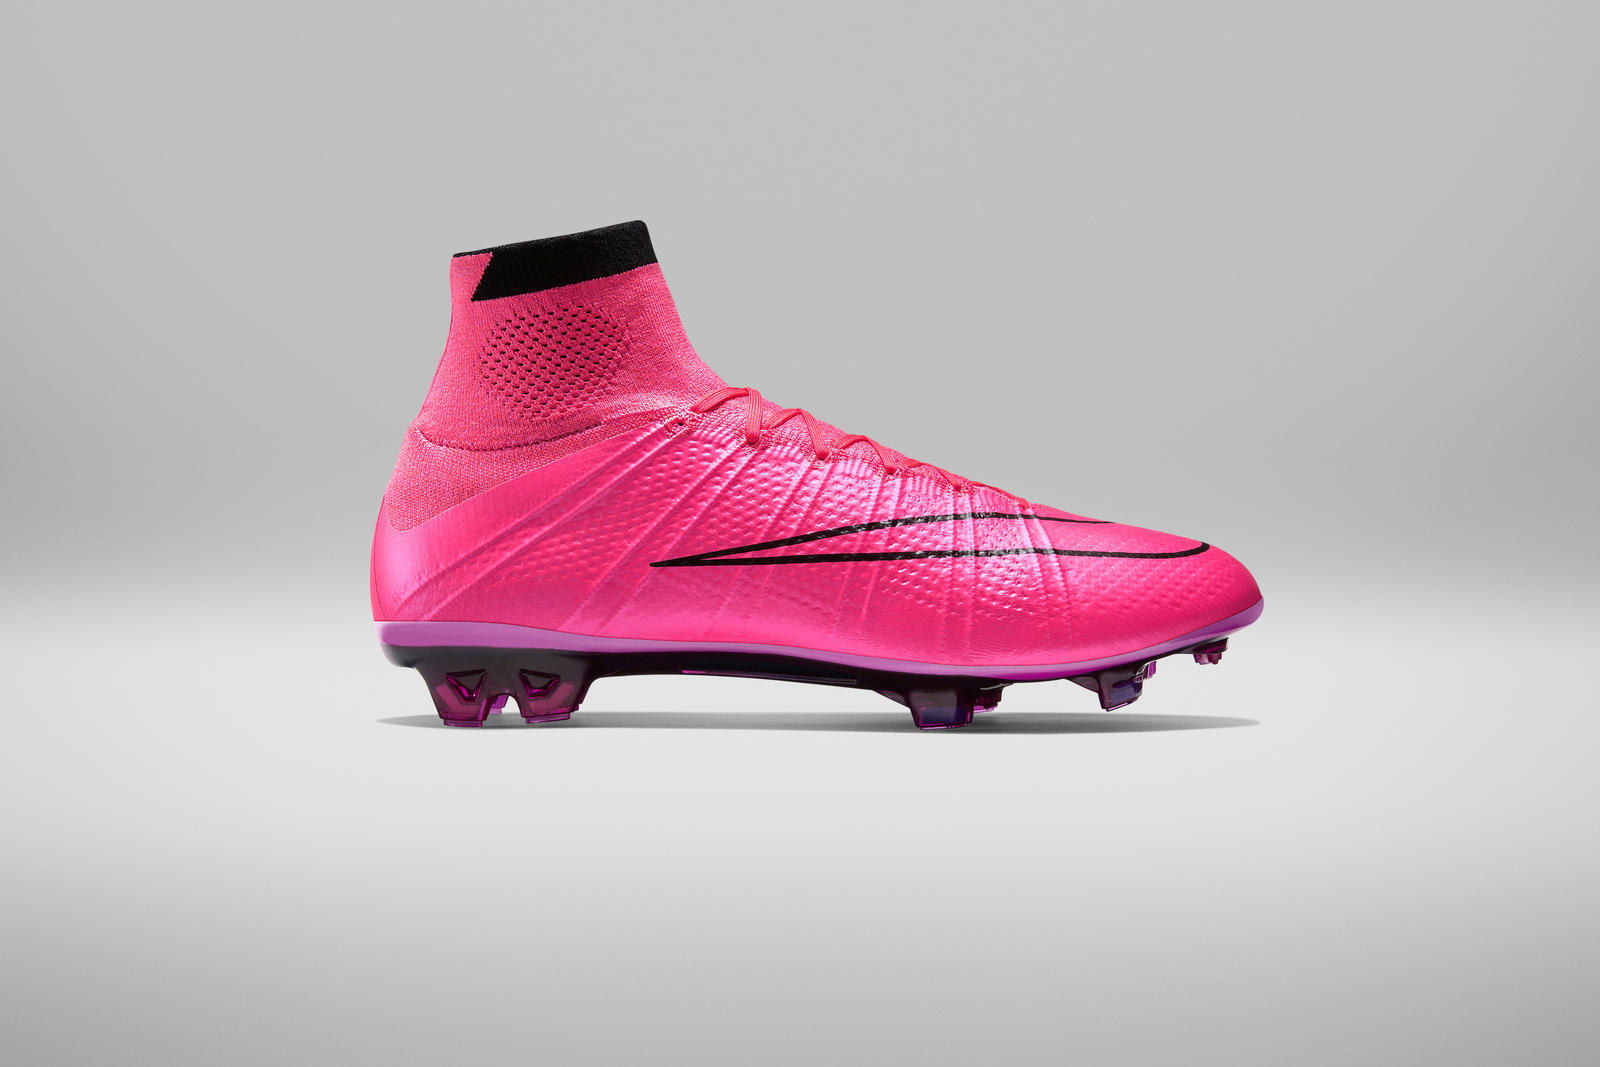 FA15_FB_FG_MercurialSuperfly_Lateral_Pink_native_1600